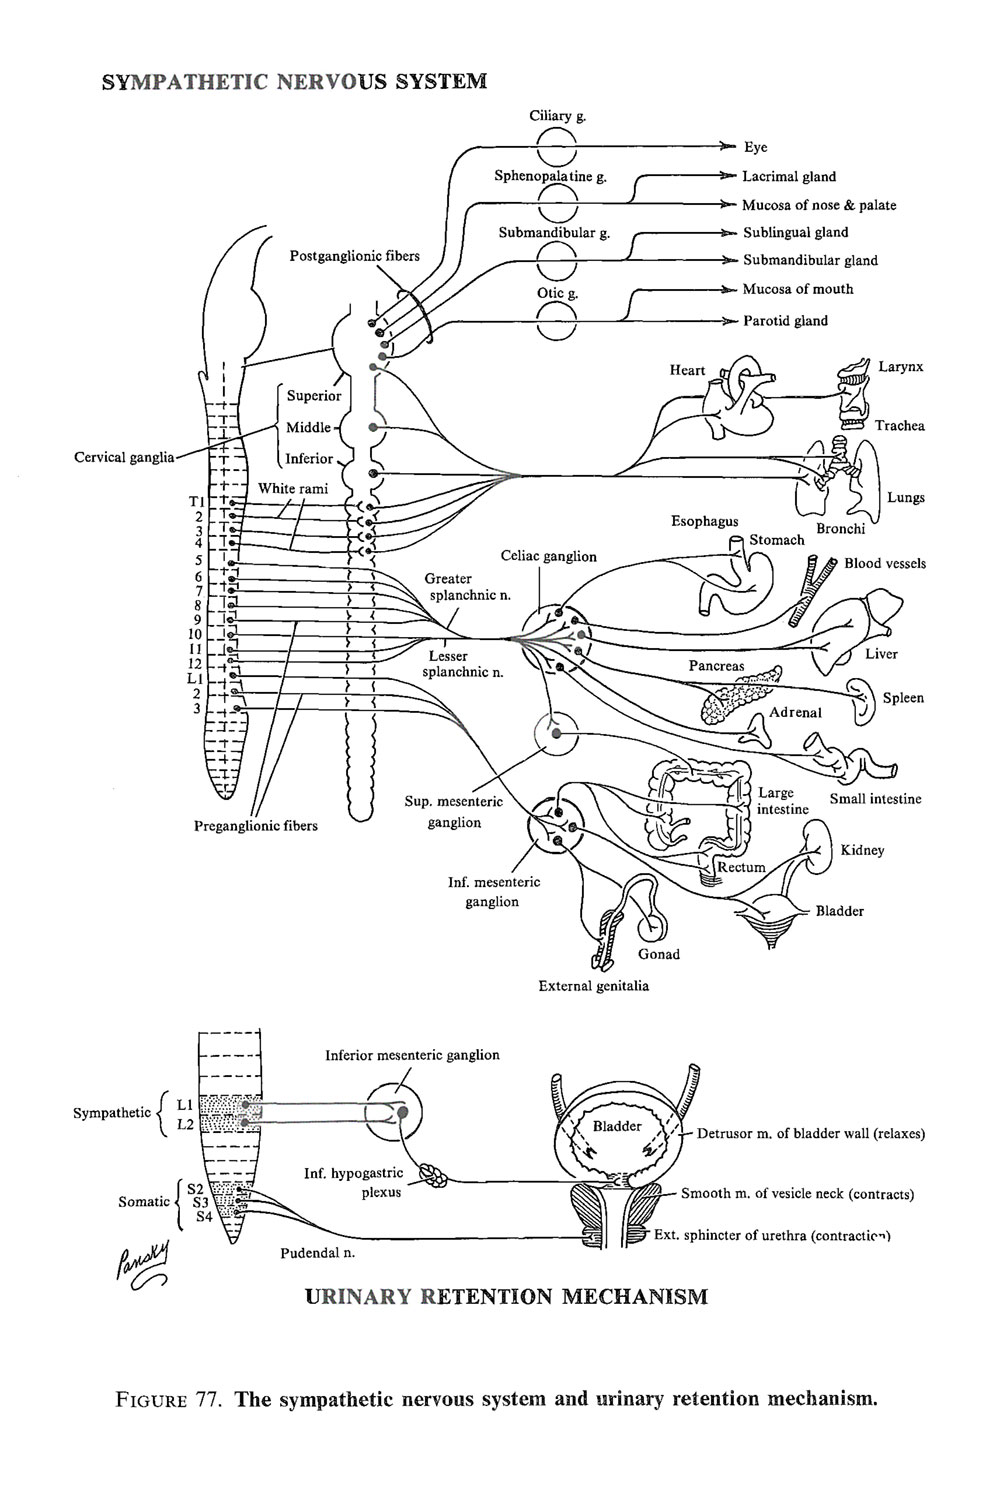 the autonomic nervous system:  the parasympathetic system: image #2